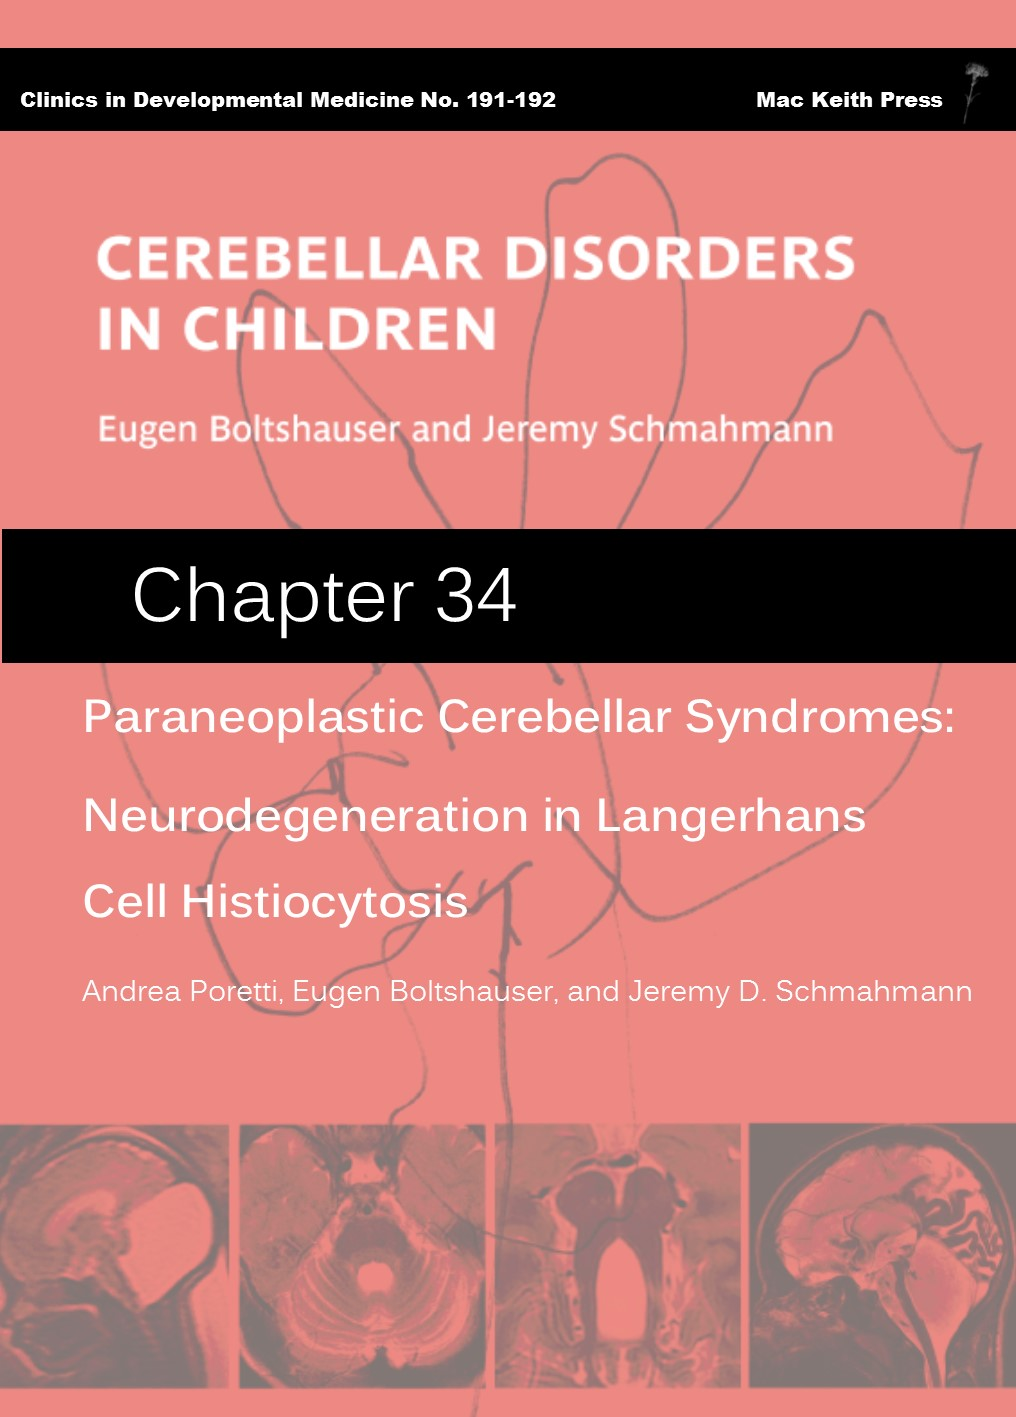 Paraneoplastic Cerebellar Syndromes - Cerebellar Disorders in Children (Chapter 34) COVER